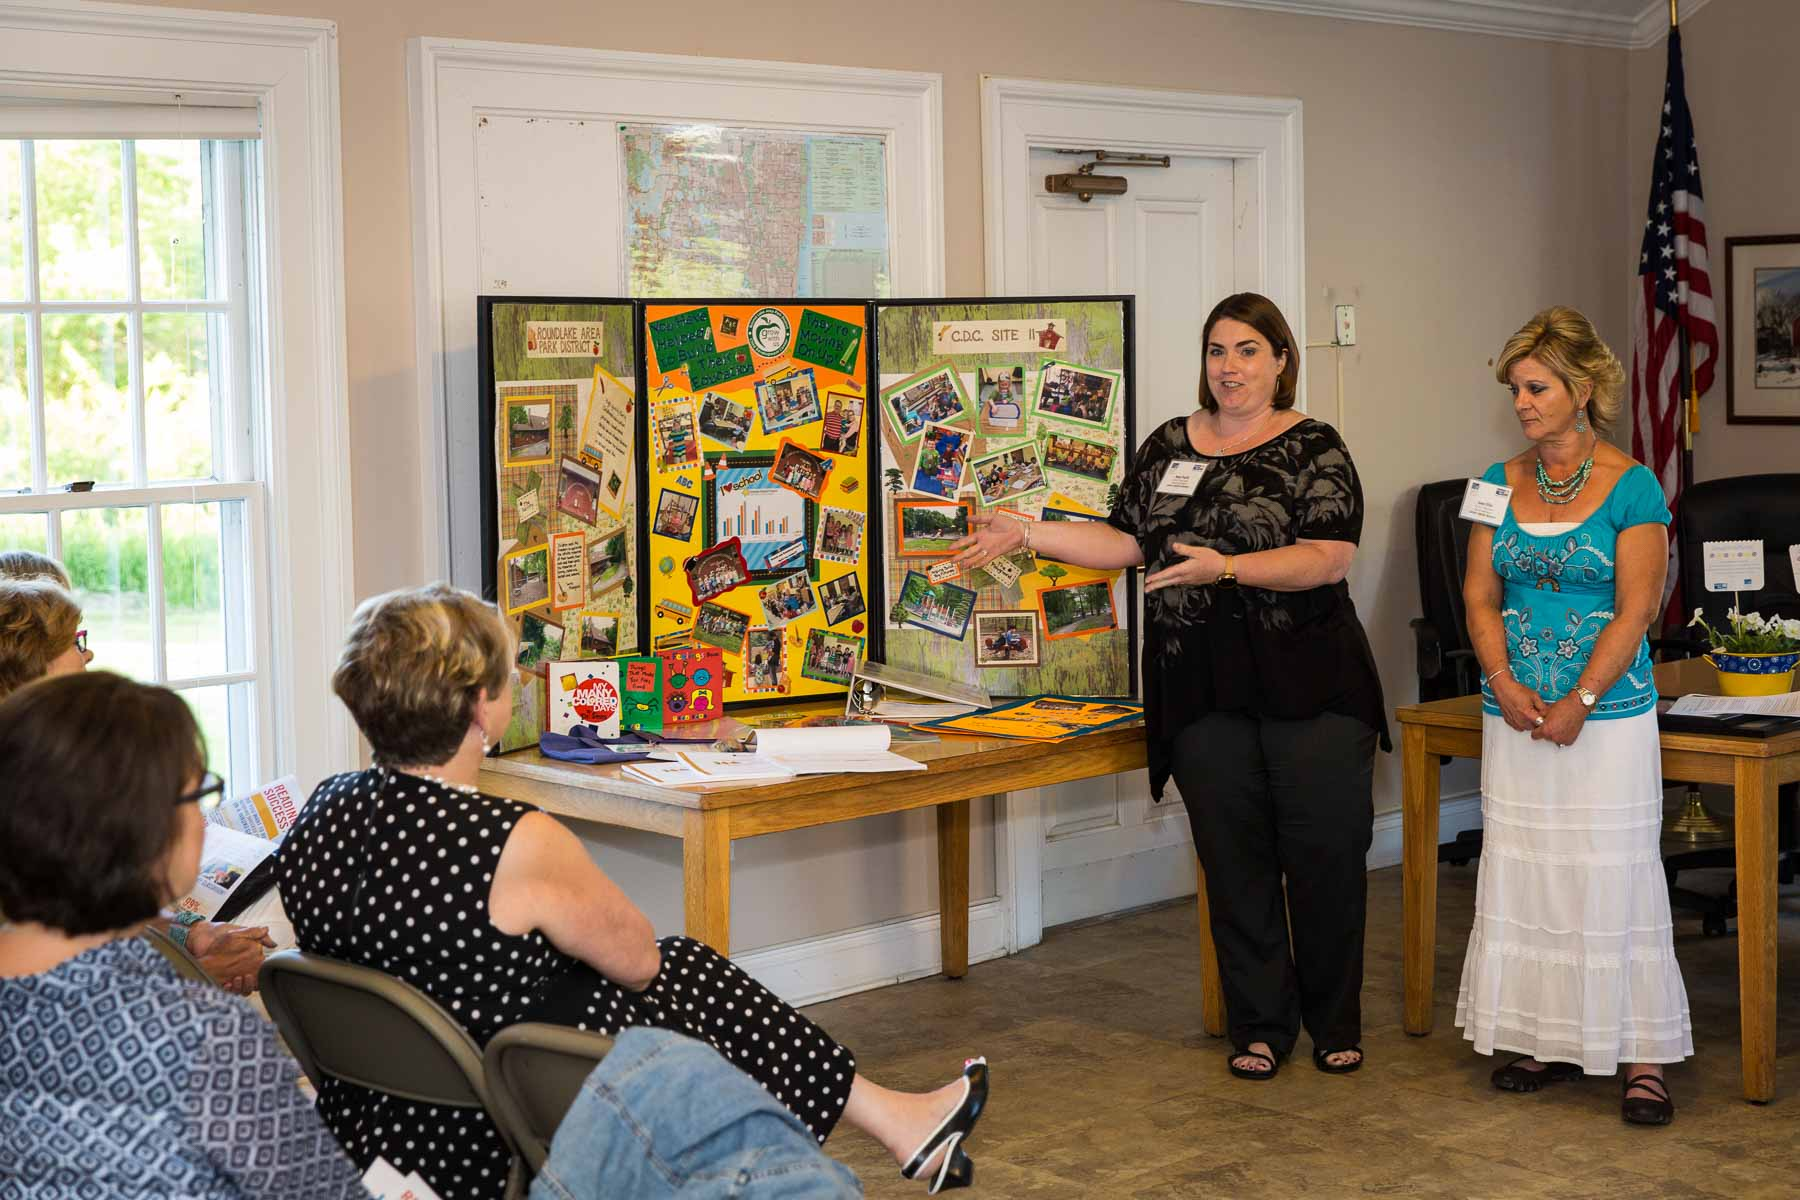 Our Village Hall was the recent setting for the presentation of over $60,000 in grant funds from United Way of Lake County Women's Leadership Council.